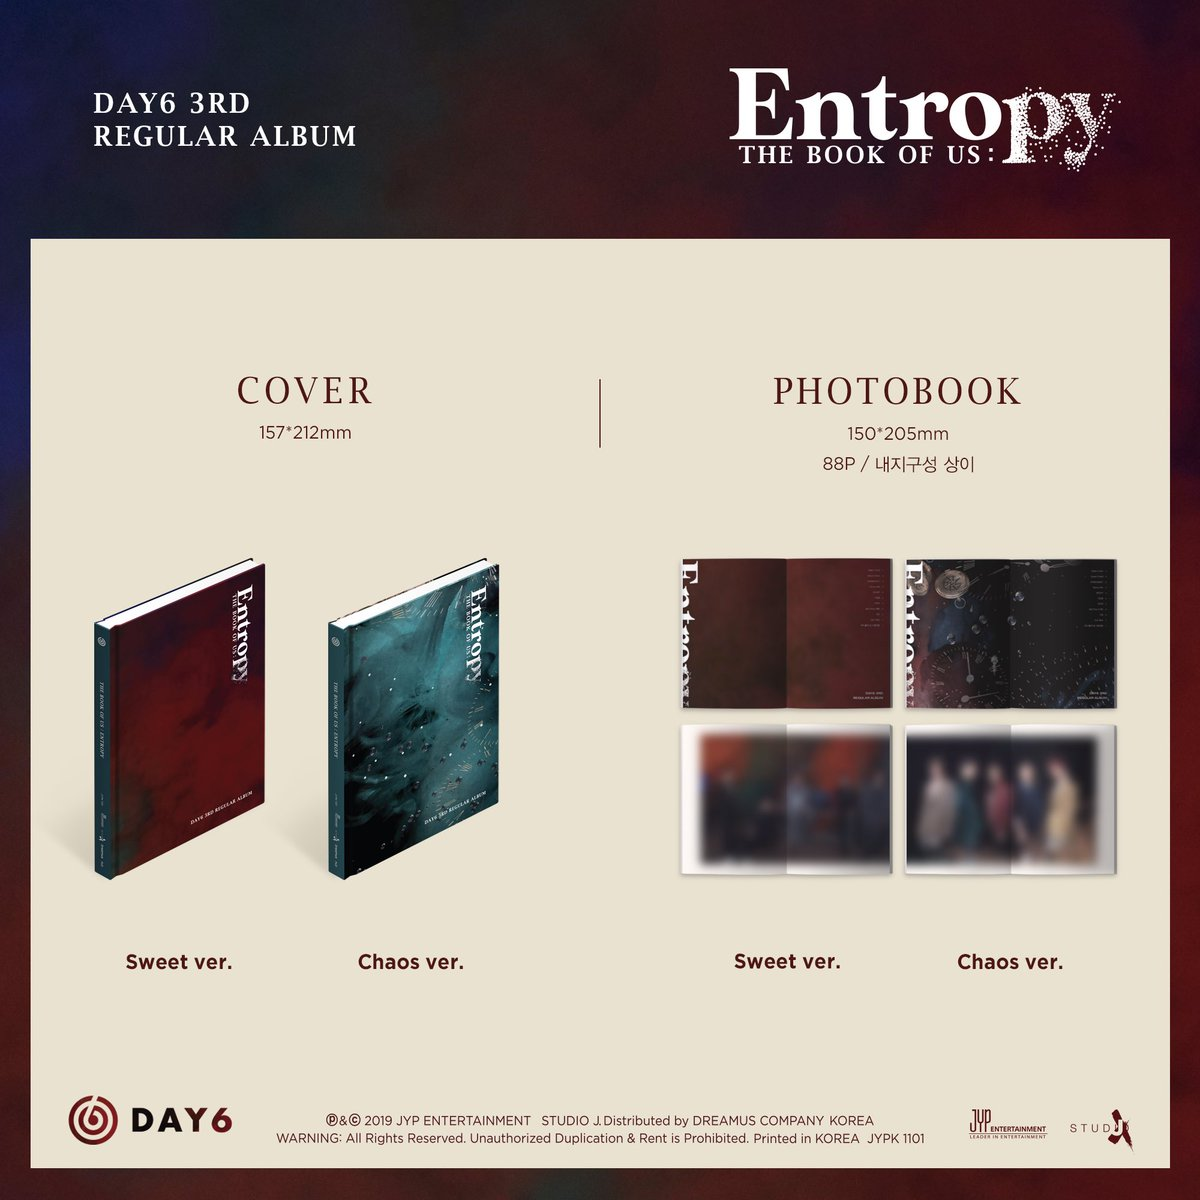 [SOON TO BE ONHAND/PH MINI GO] DAY6 'THE BOOK OF US: ENTROPY' Regular Album with POBs (Film Photocard and Poster)  985php + lsf  ETA: This week Reservation of 75% dp is allowed for STBOH  DM <br>http://pic.twitter.com/c3D2hi6NXS